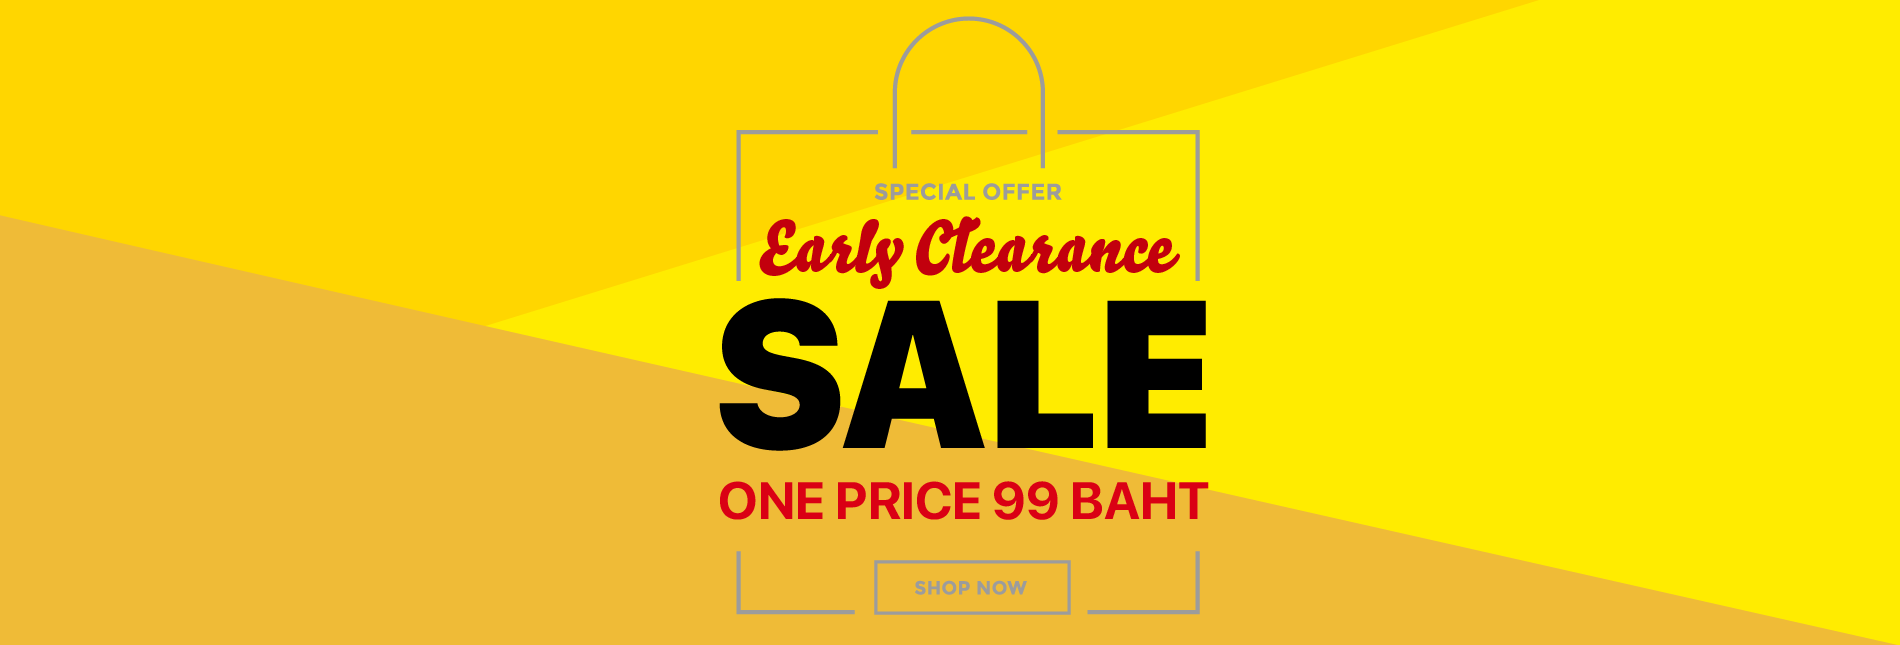 early clearance sale